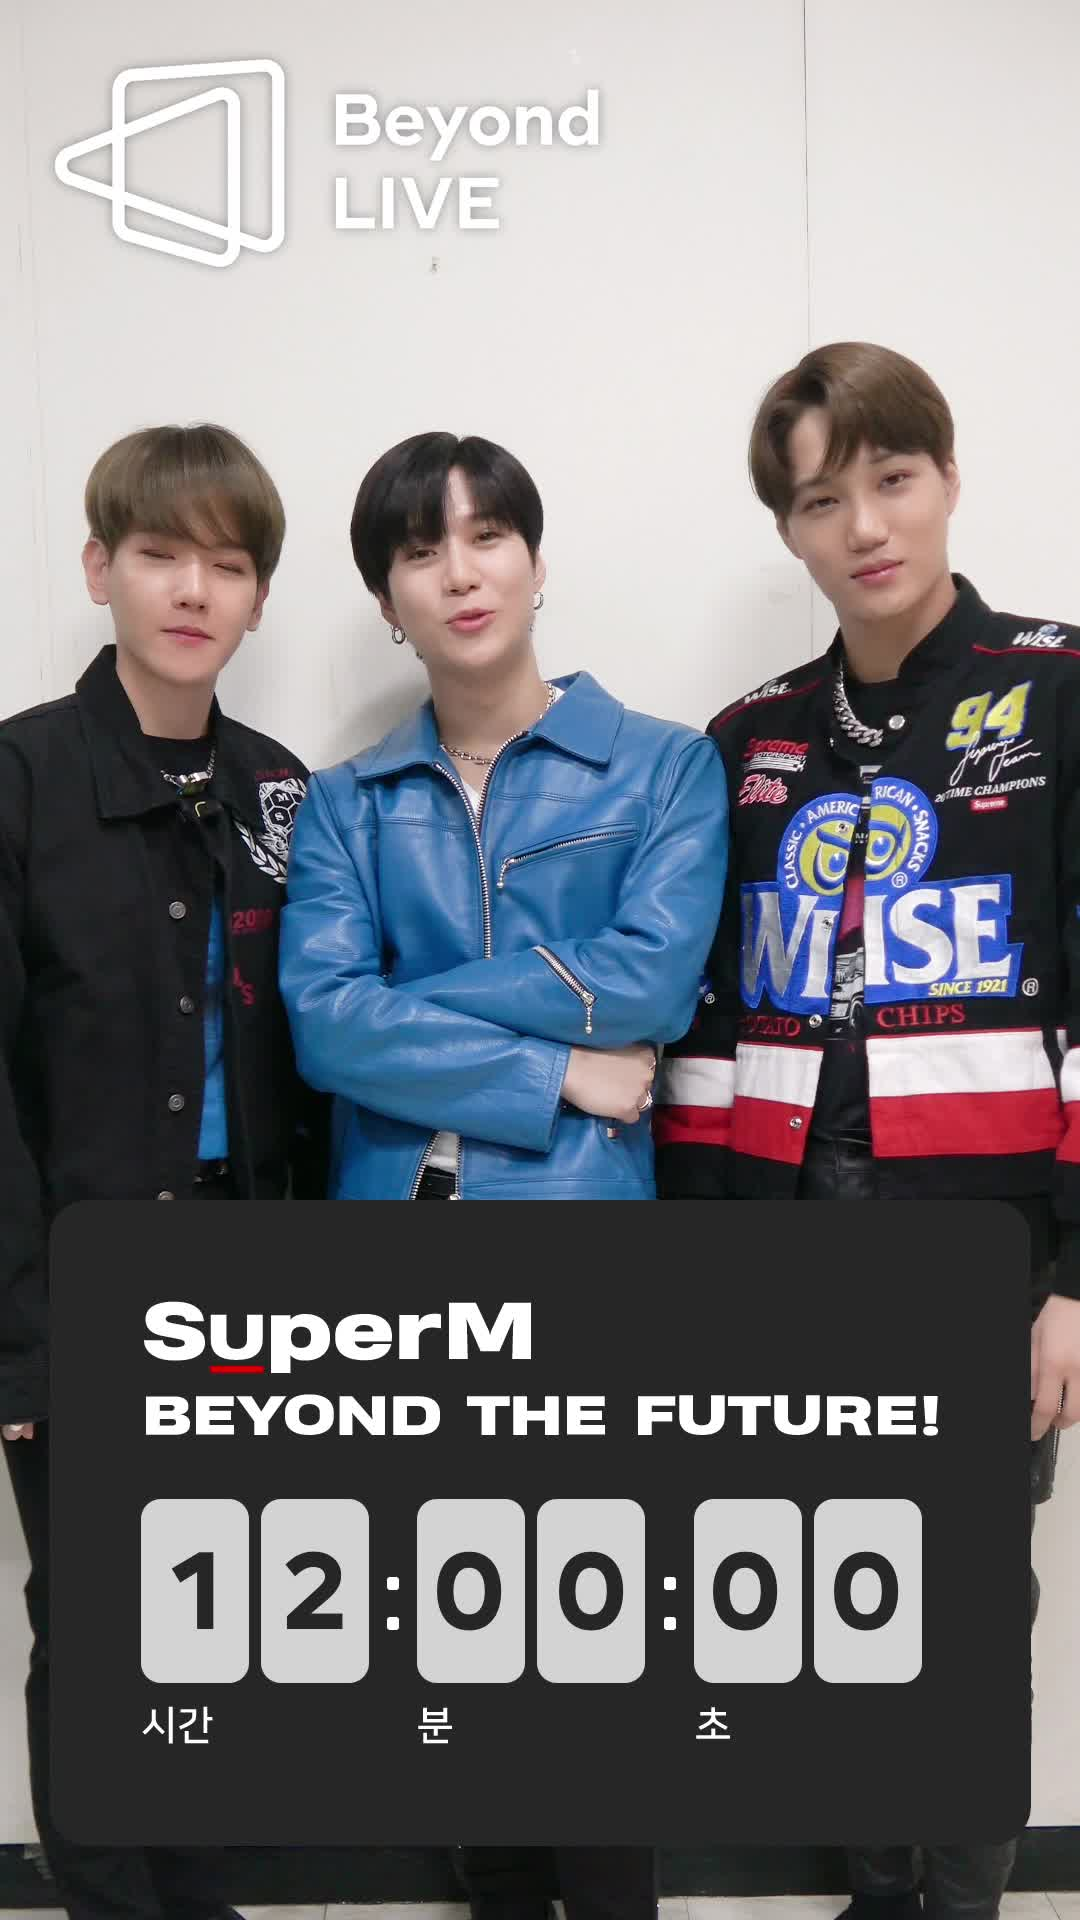 "'SuperM Beyond the Future' D-DAY🔥THE COUNTDOWN BEGINS : 12 hours to go⏰ ""👉🏻Stay tuned👈🏻"""